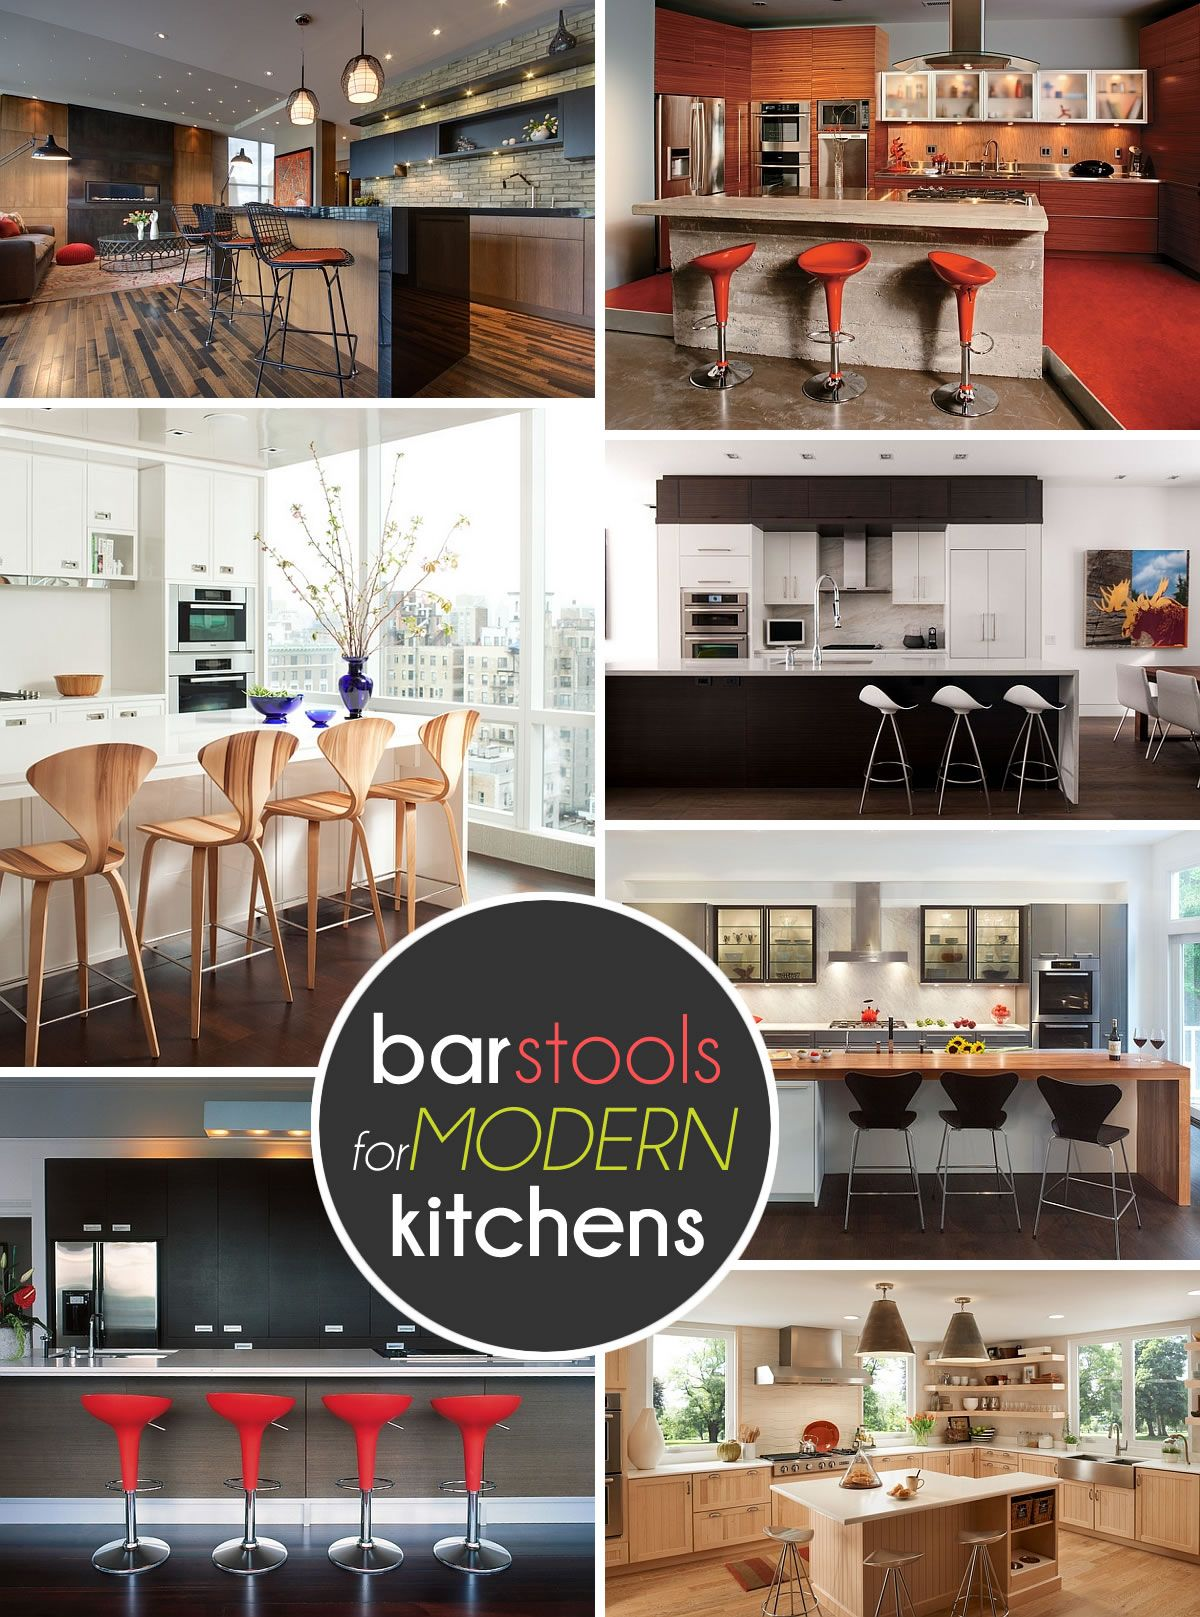 9 Trendy Bar And Counter Stools To Complete Your Modern Kitchen ...